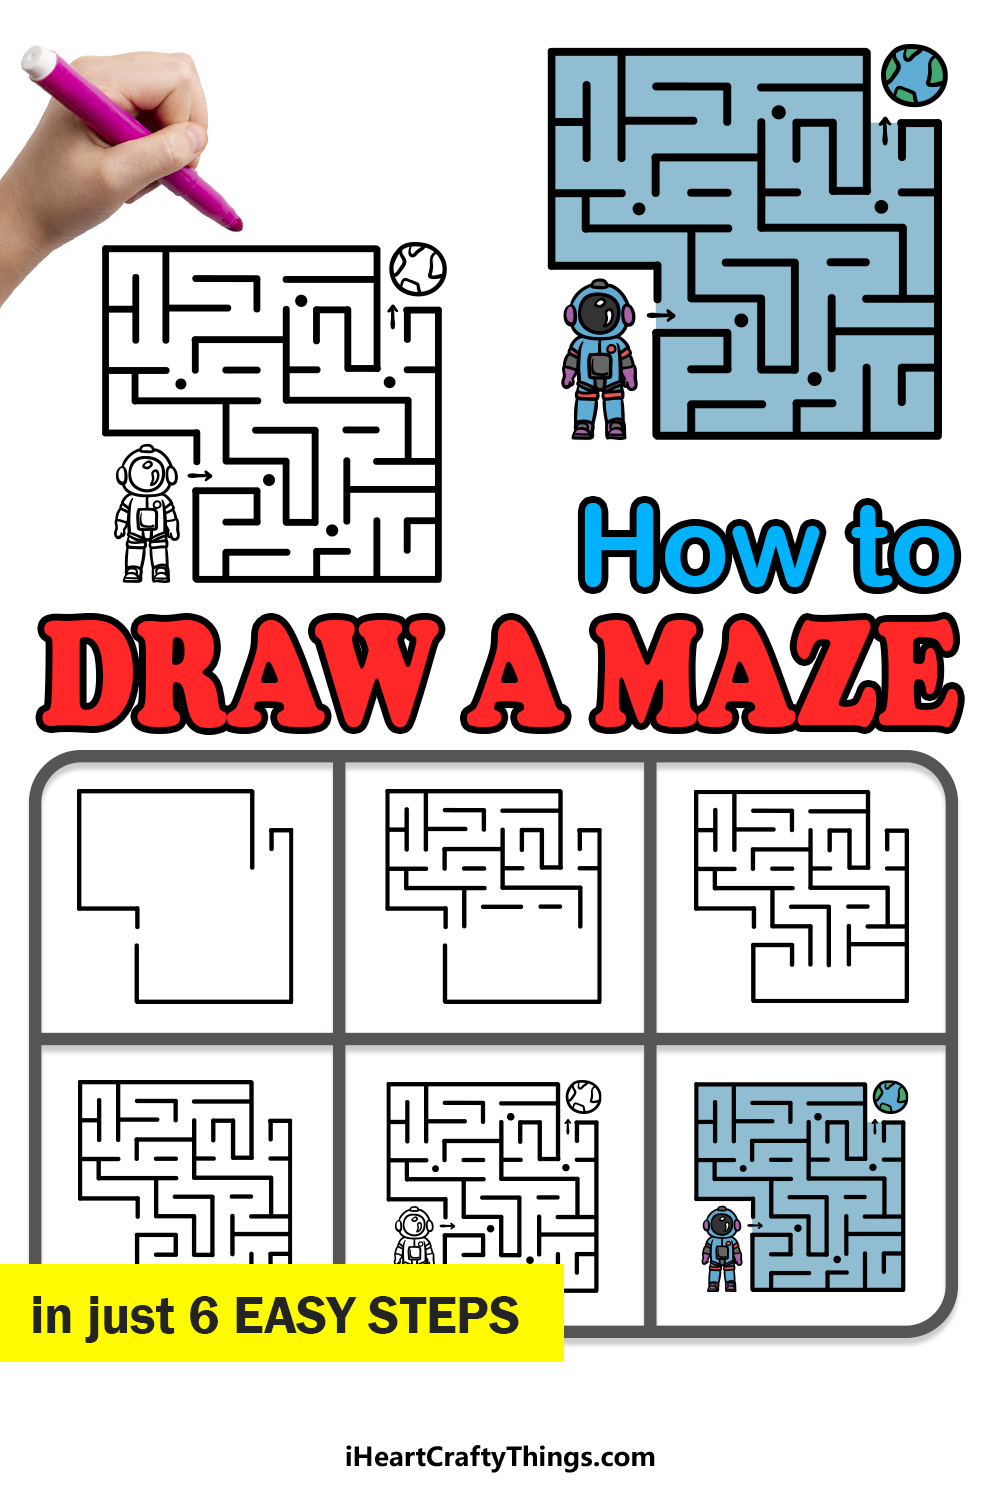 how to draw a maze in 6 easy steps